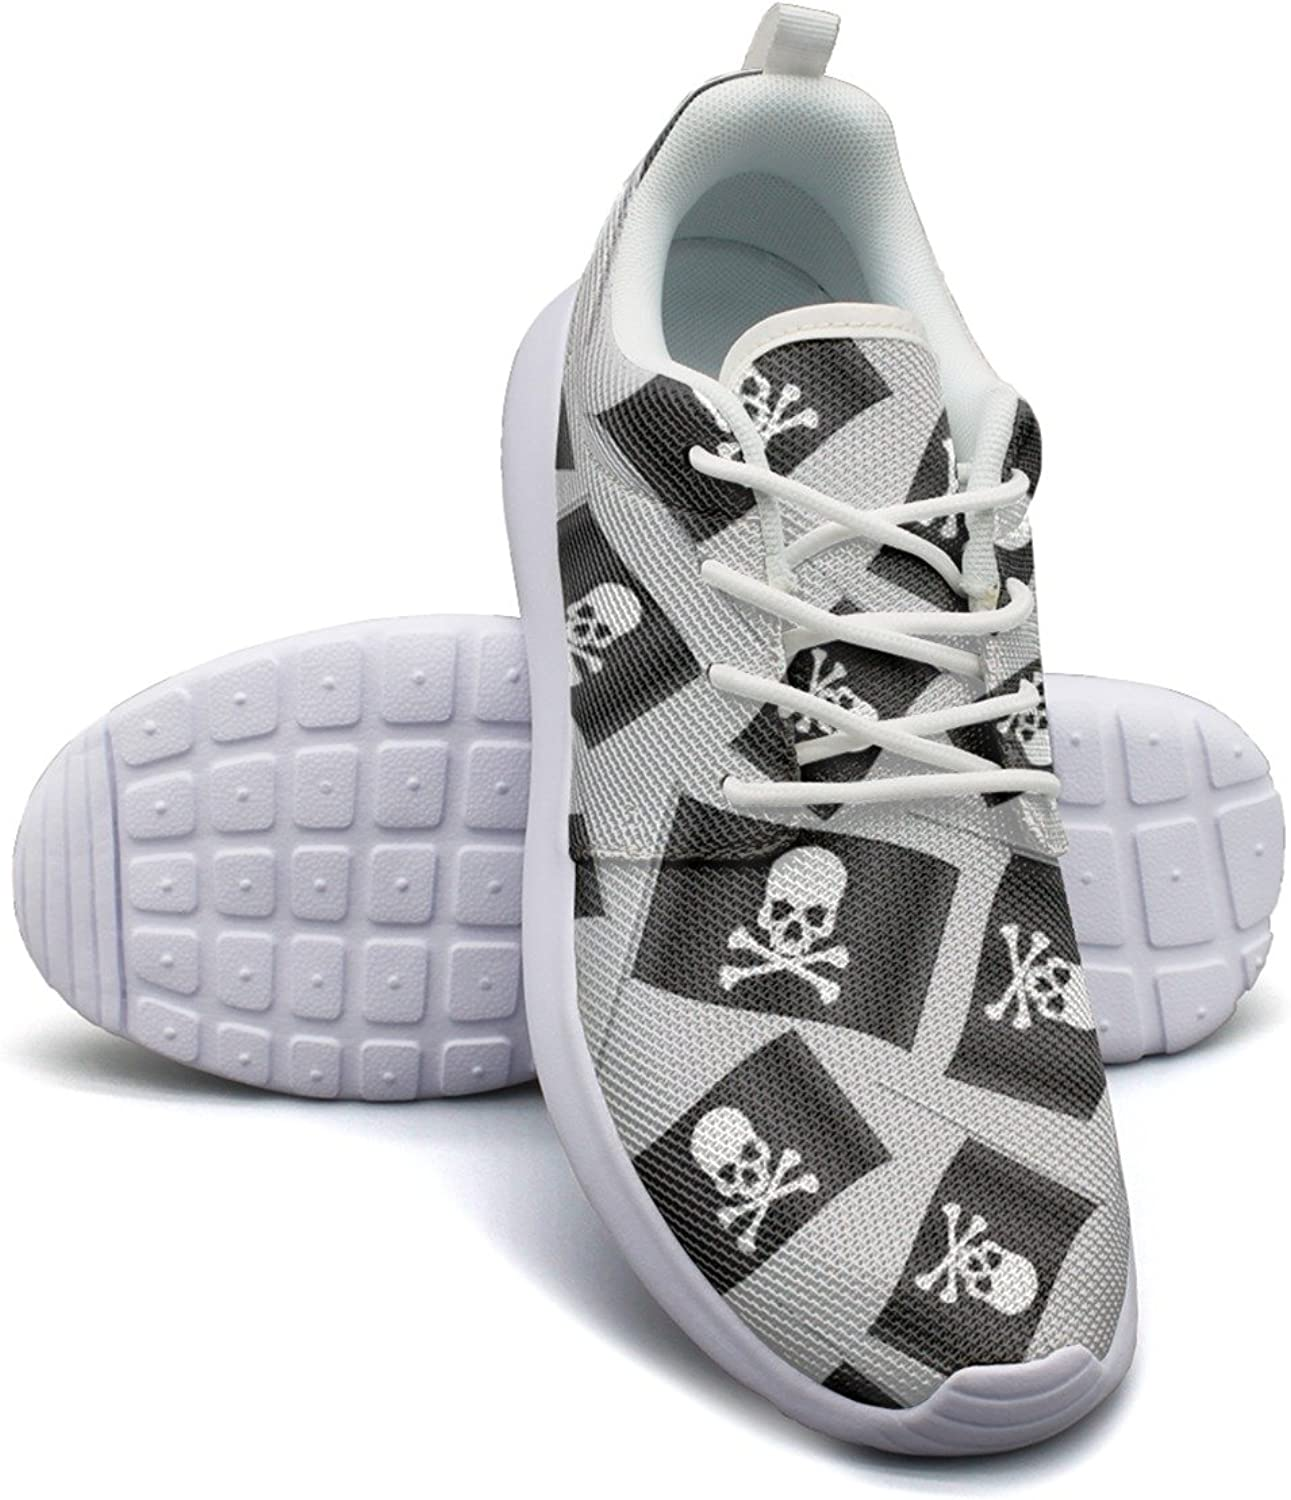 Black Small Pirate Flag with Skull and Bones Women's Lightweight Mesh Sneakers Popular Running shoes